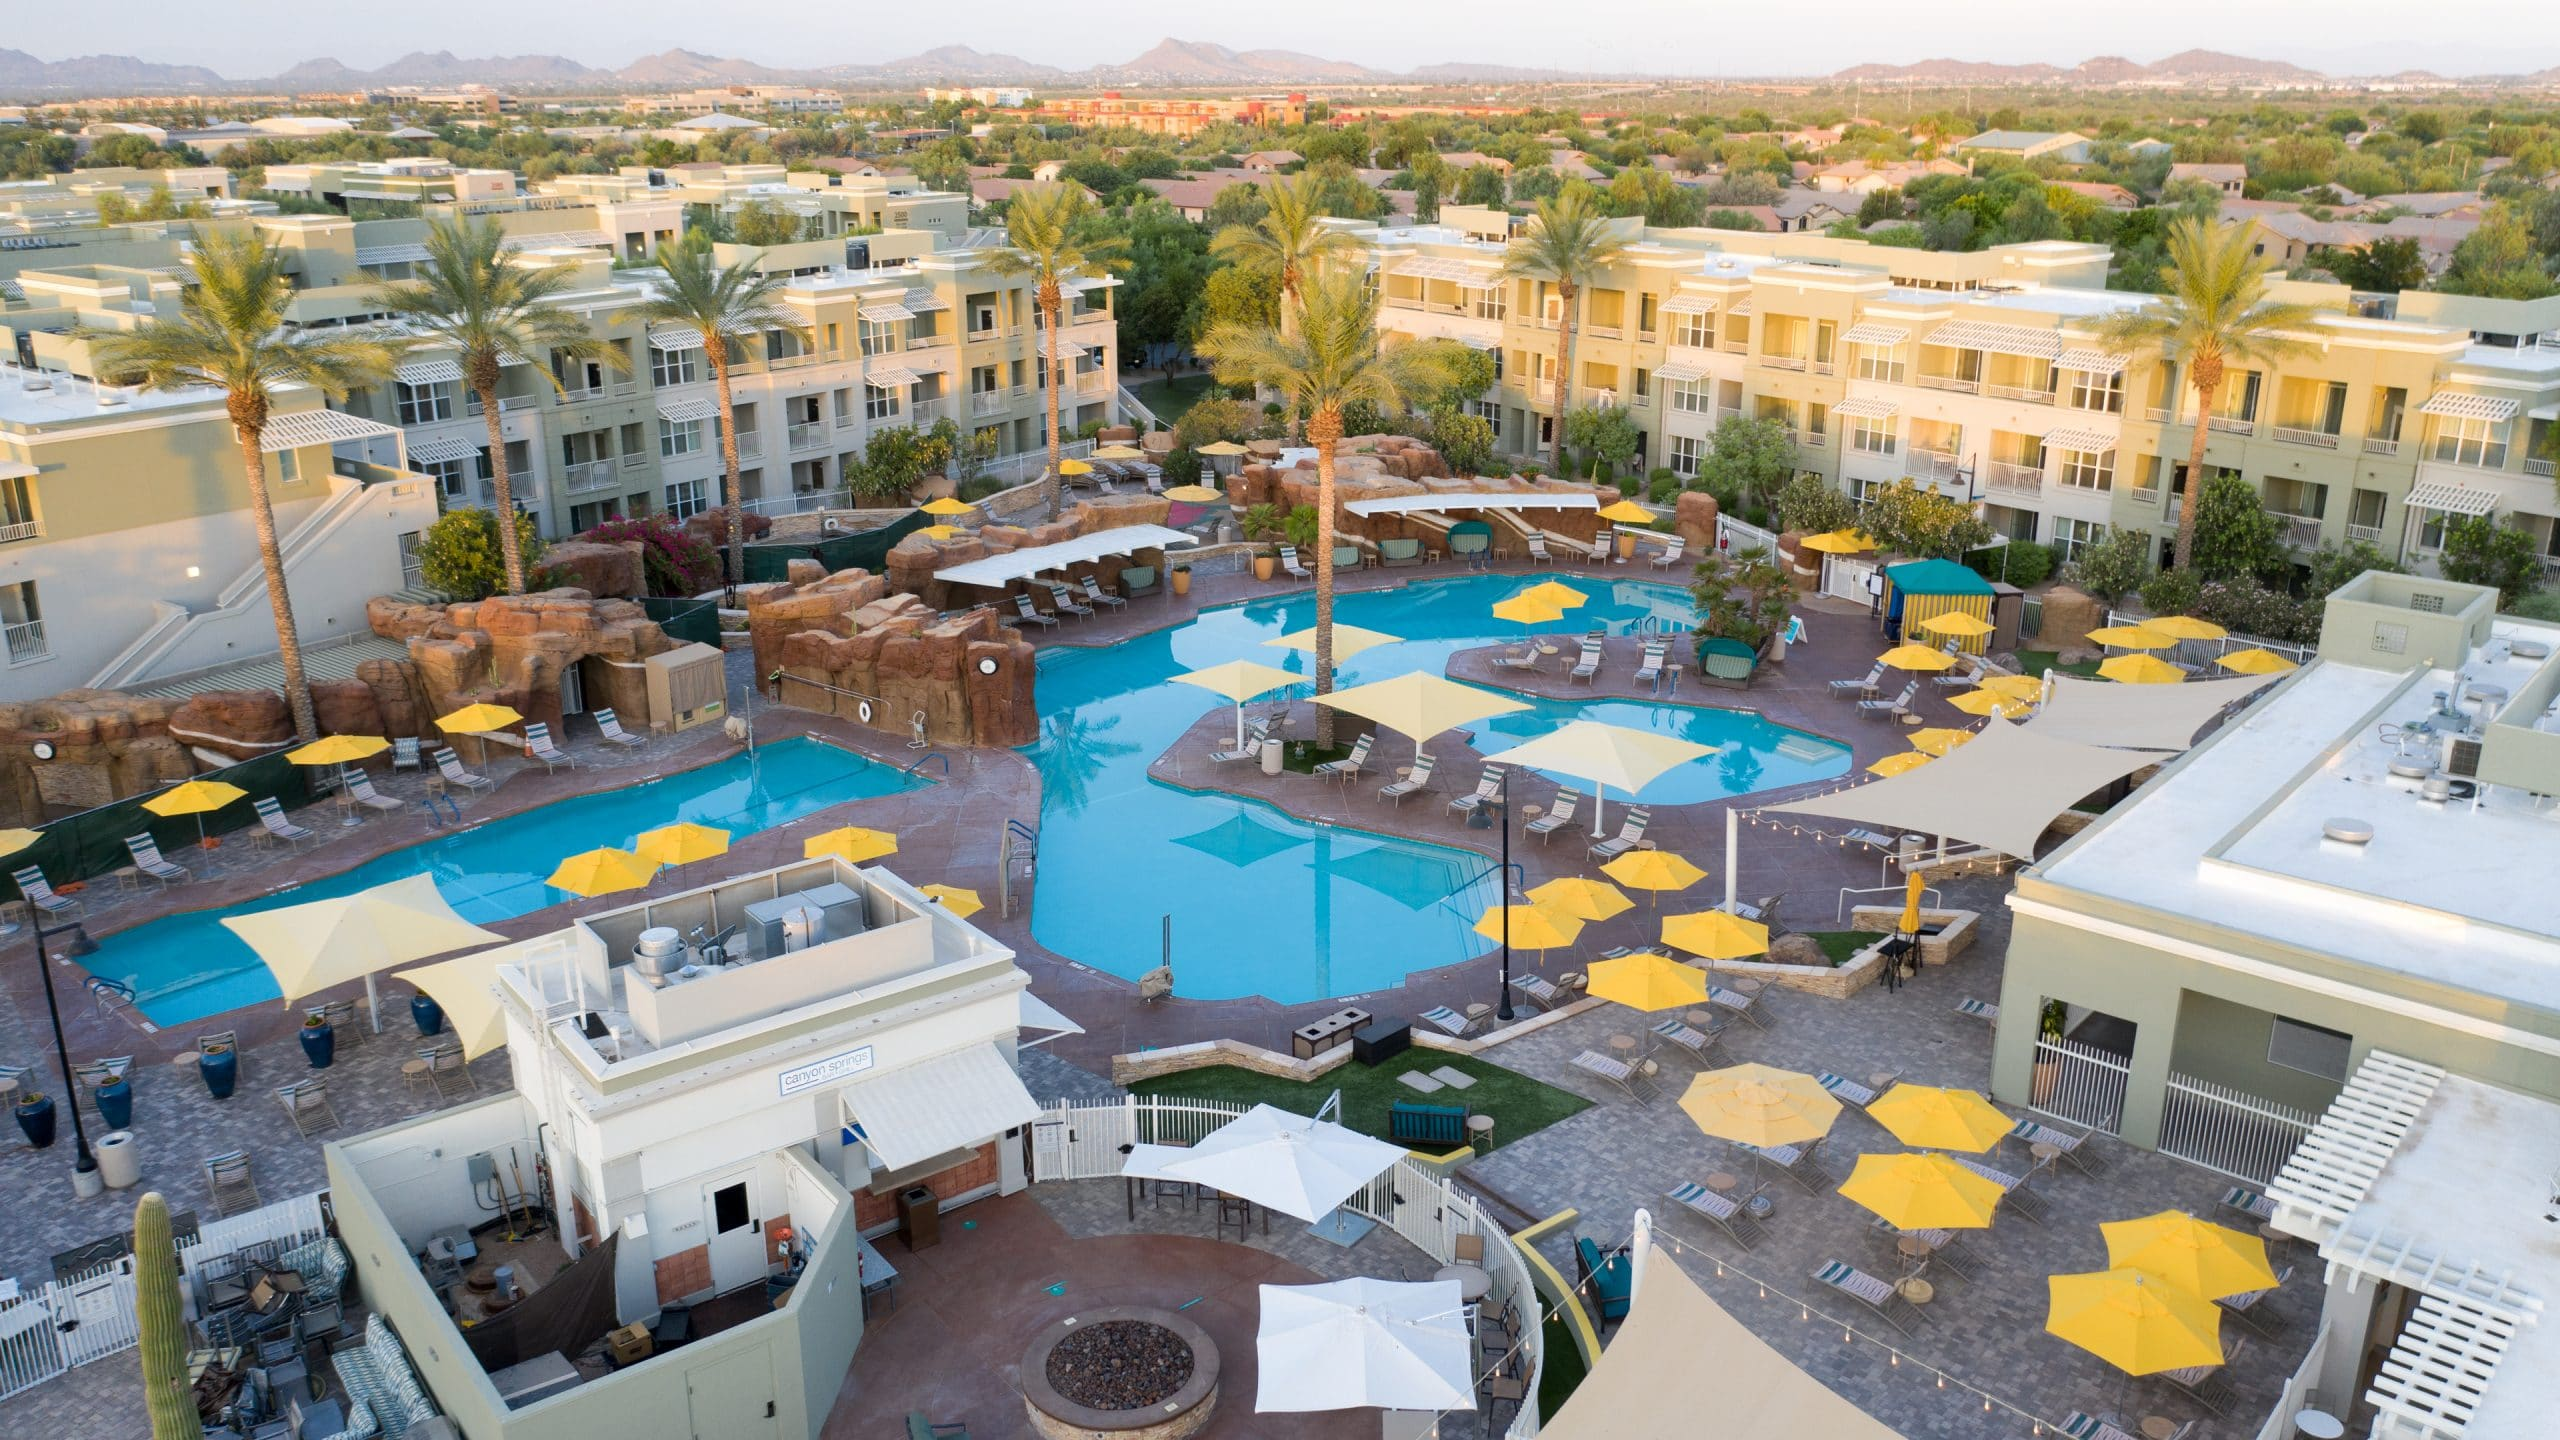 Marriotts Canyon Villas Hospitality Exterior Renovations scaled